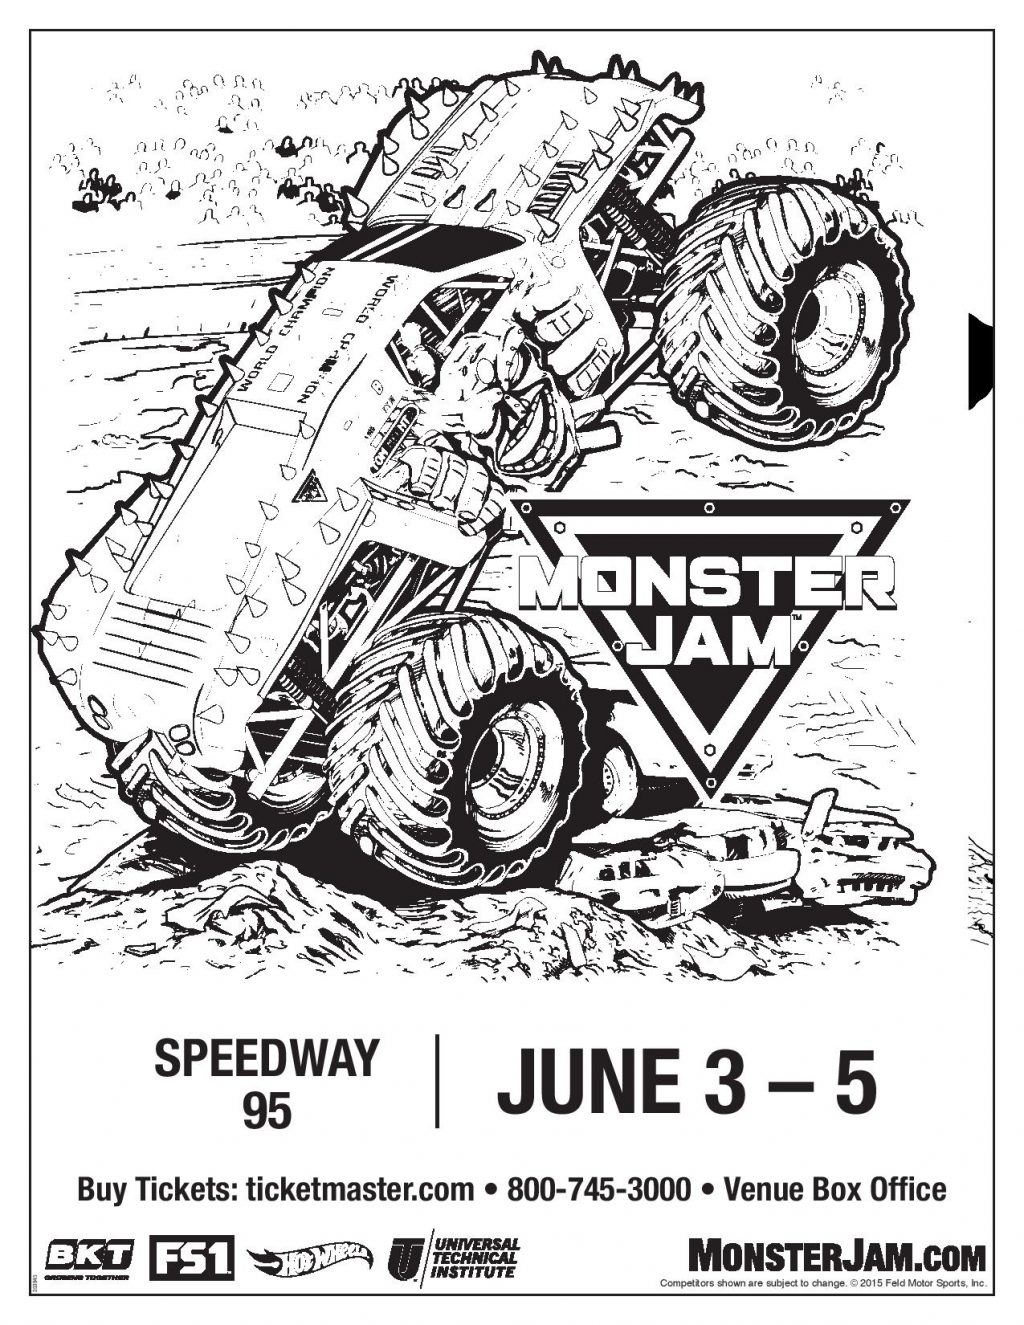 Monster Jam comes to Bangor, ME - Ticket Giveaway - Crafty Mama in ME!